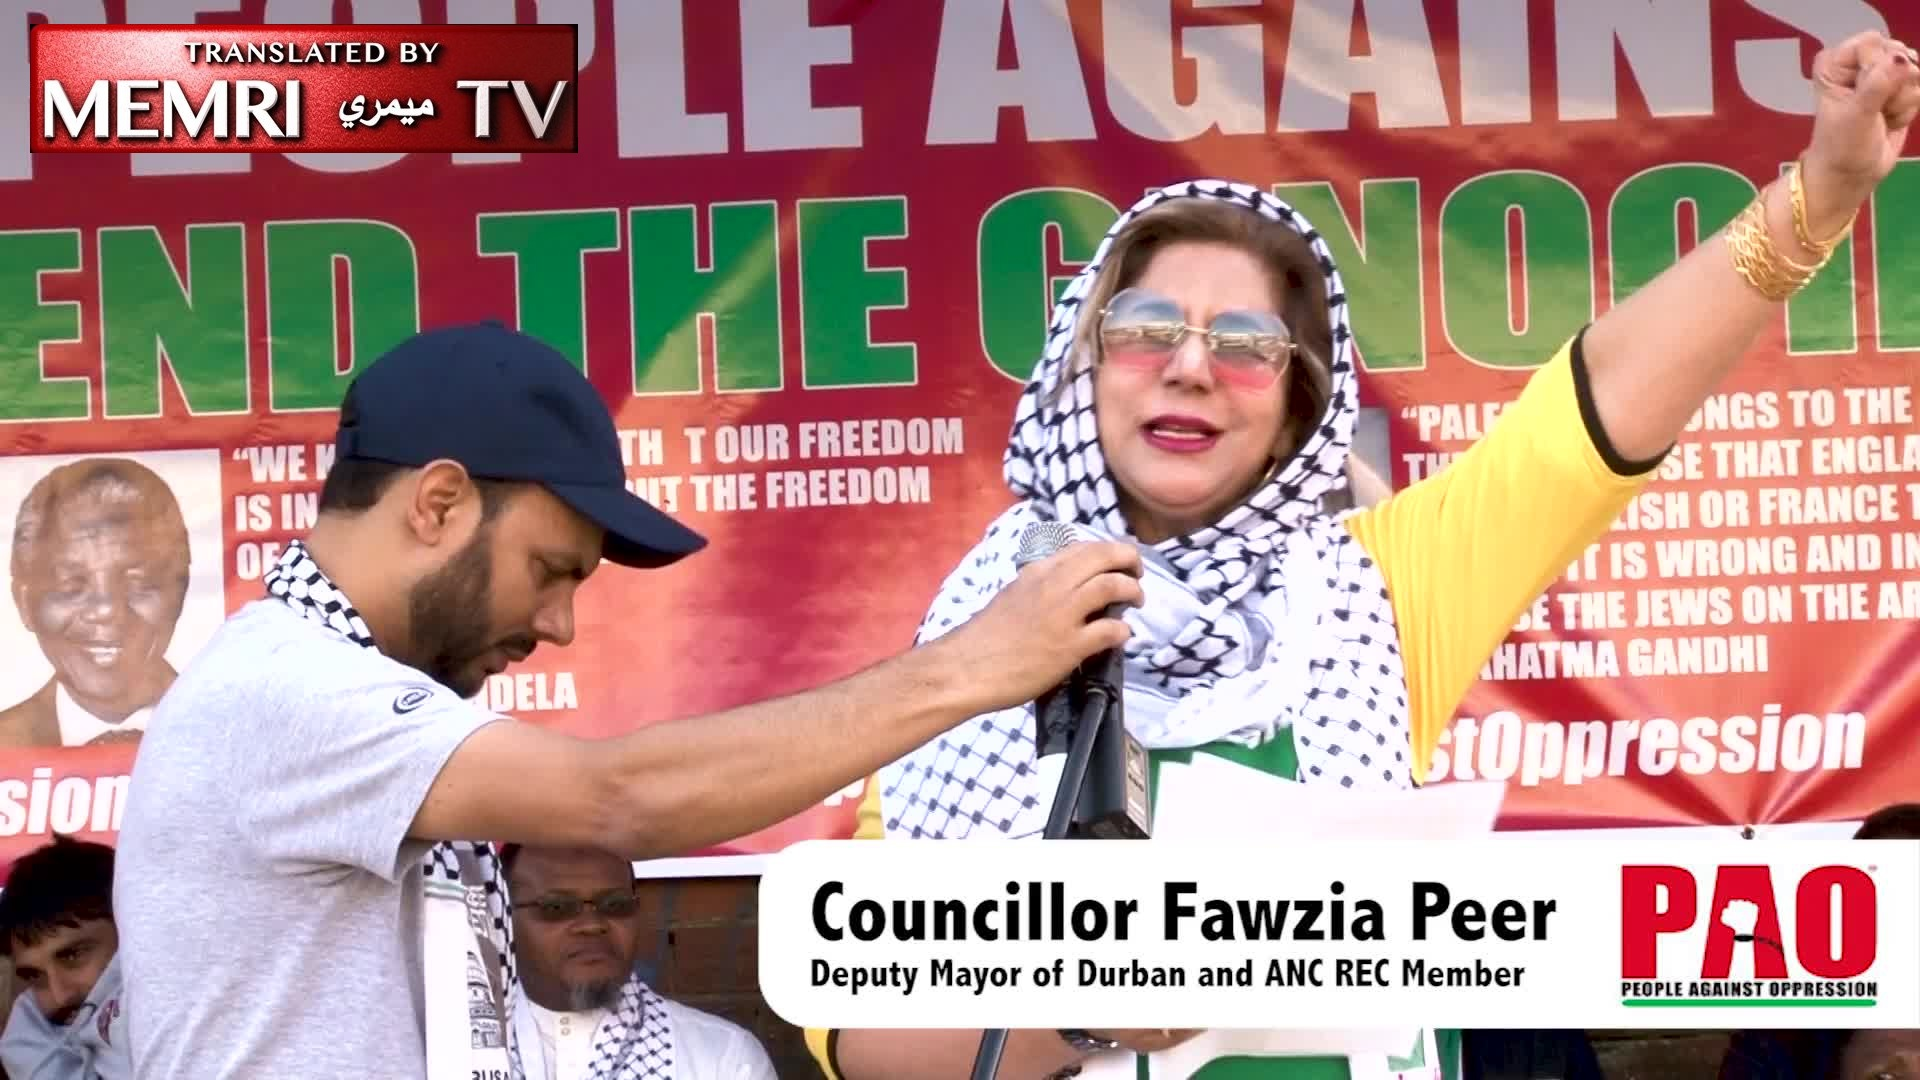 Durban Deputy Mayor Fawzia Peer in a BDS Event: Apartheid Israel Will Tumble into Dust